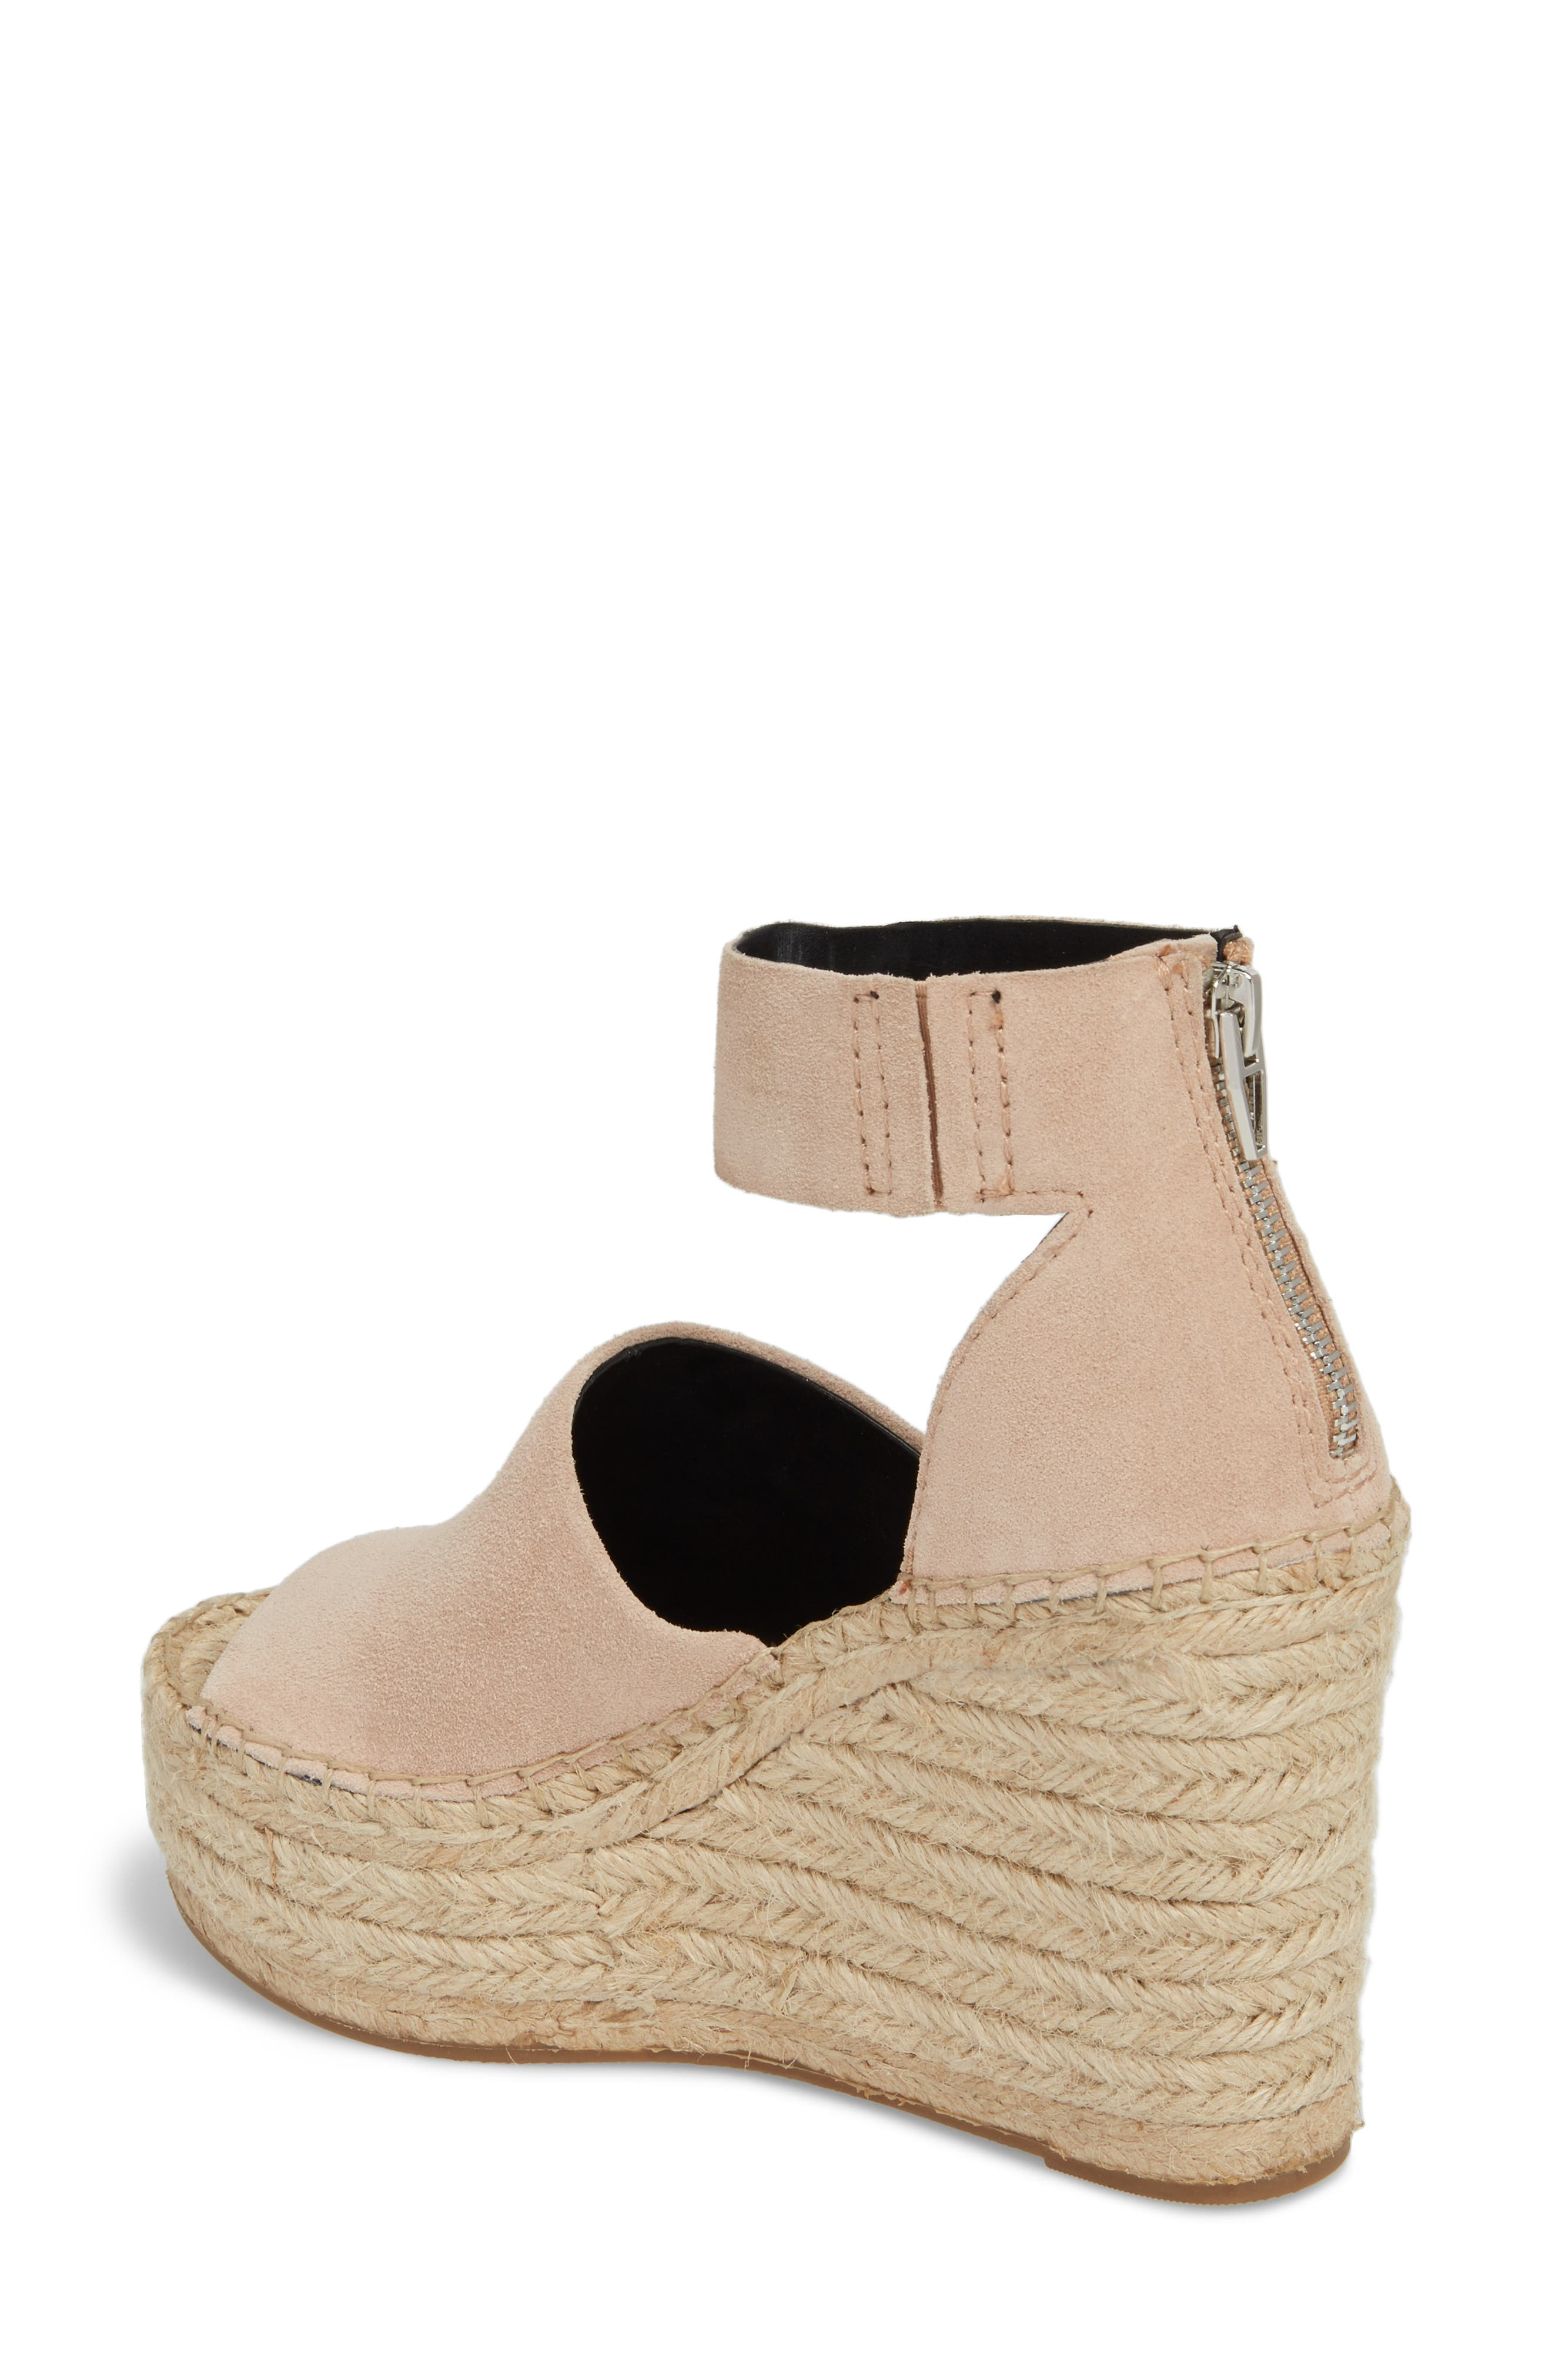 DOLCE VITA, Straw Wedge Espadrille Sandal, Alternate thumbnail 2, color, BLUSH